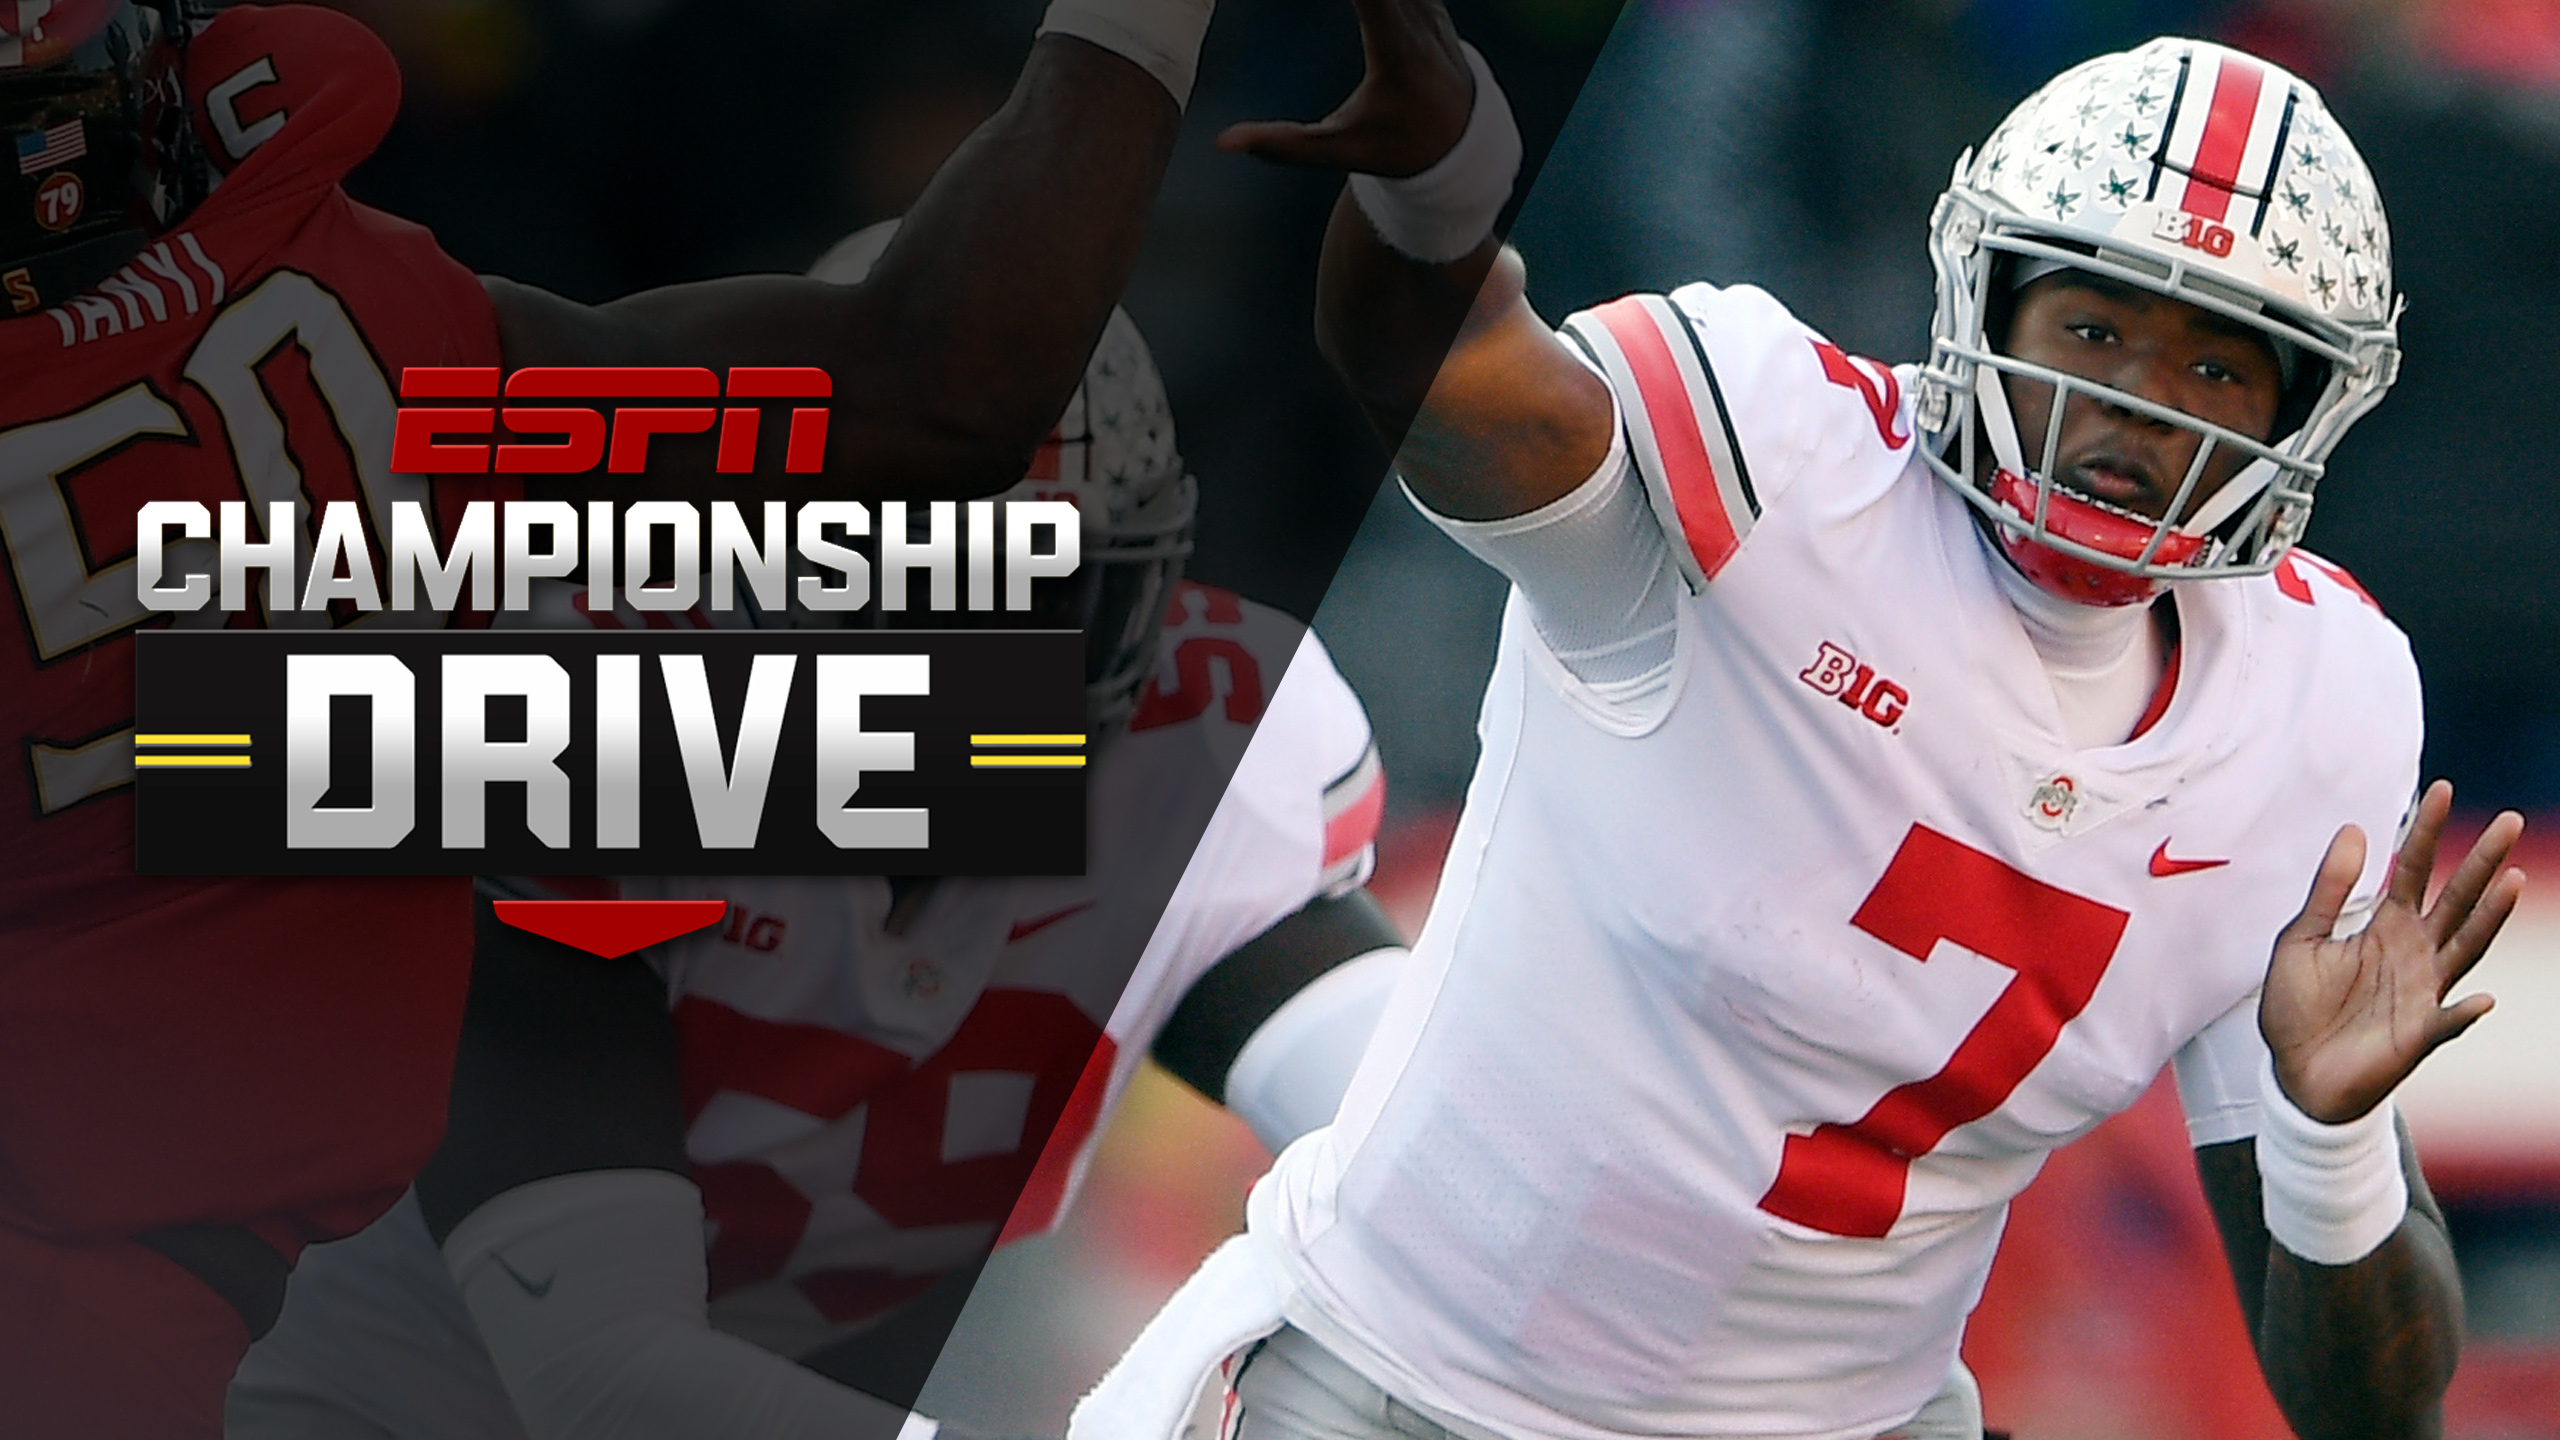 Championship Drive: Who's In? Presented by Goodyear